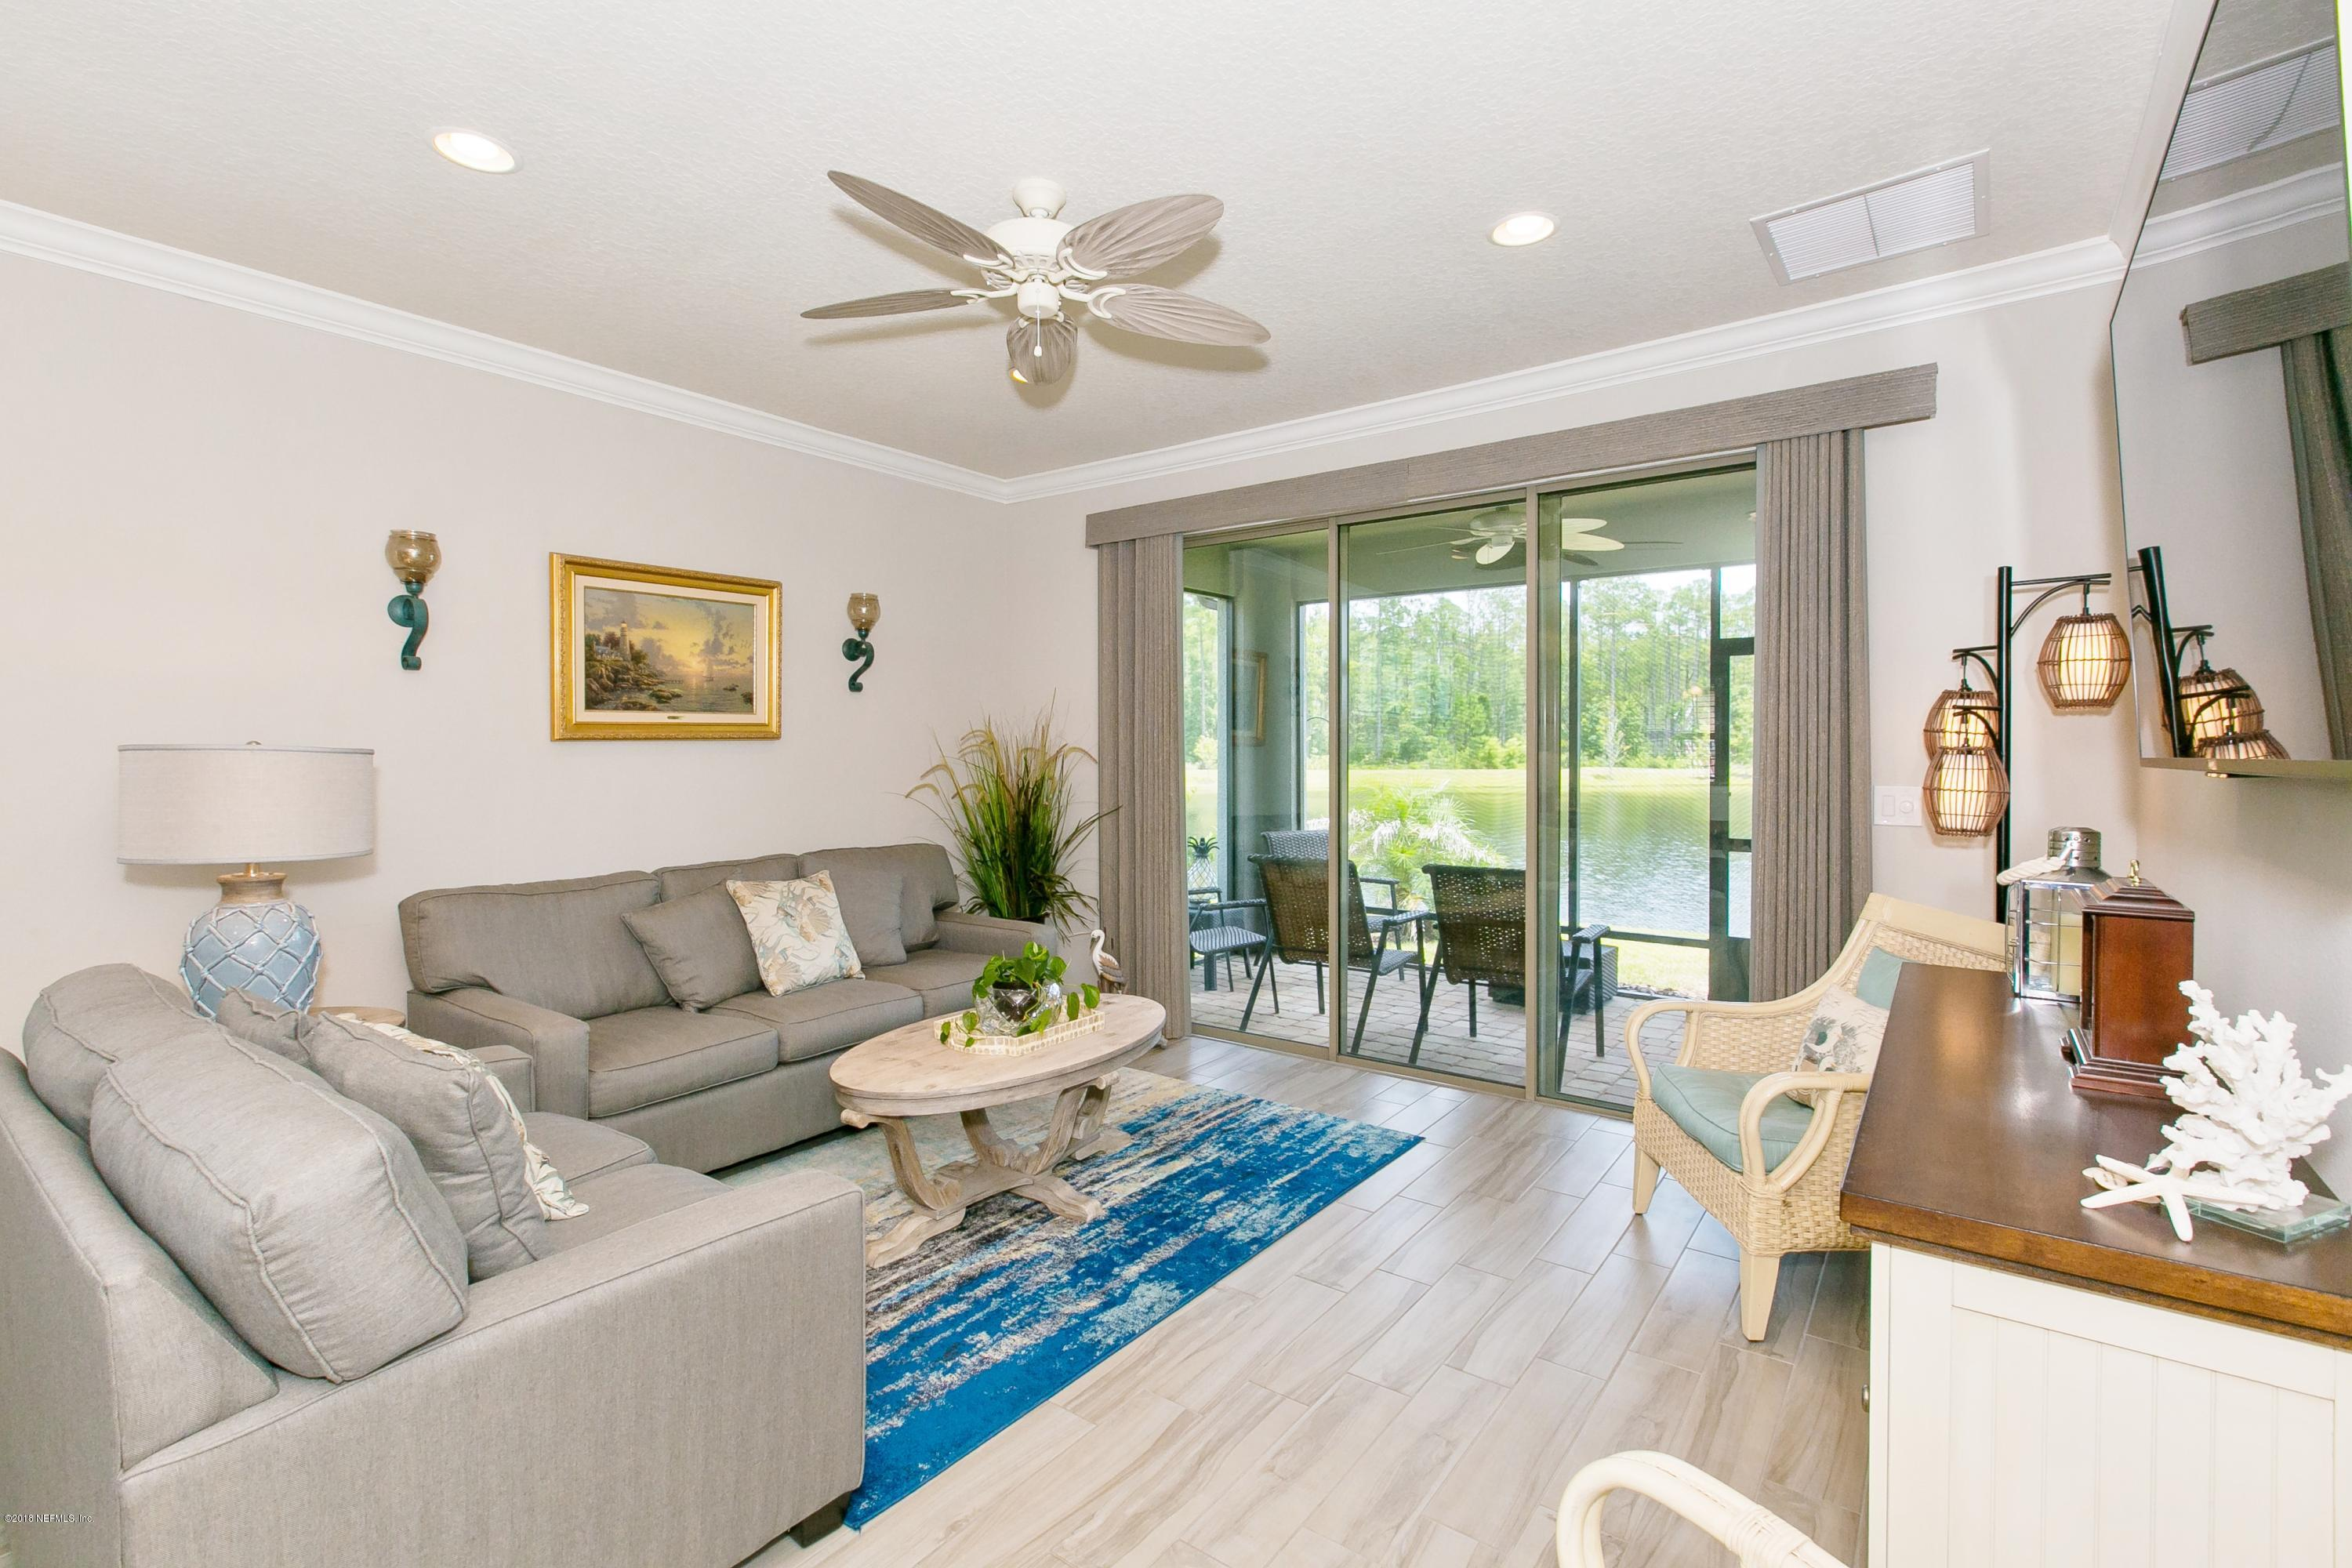 94 WOOD MEADOW WAY PONTE VEDRA - 3